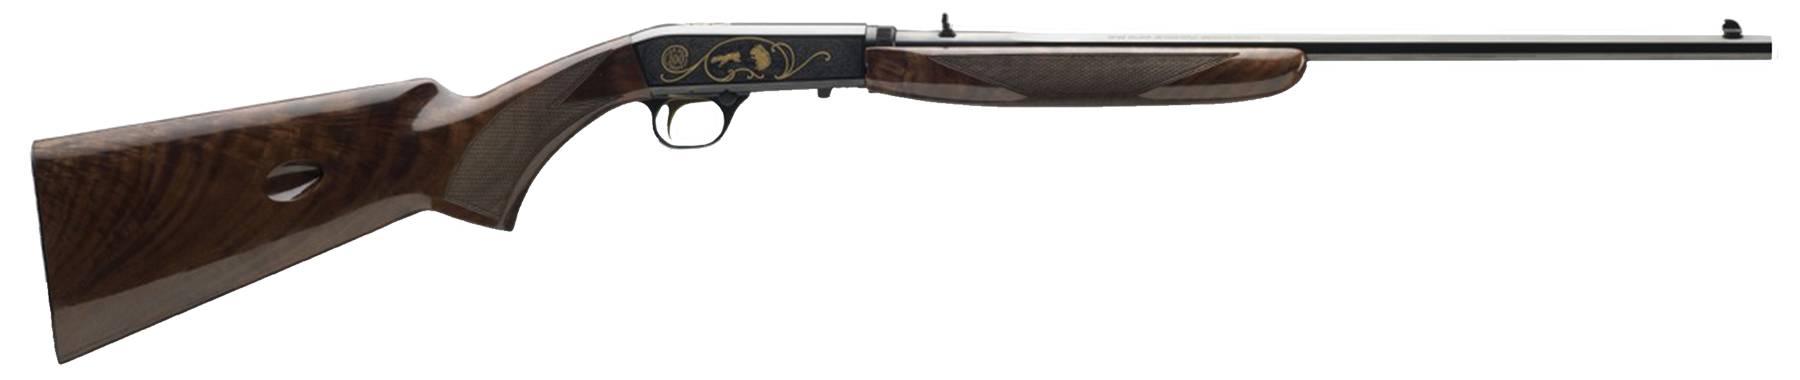 Browning 021017102 SA .22LR High Grade 100th Anniv 19.38